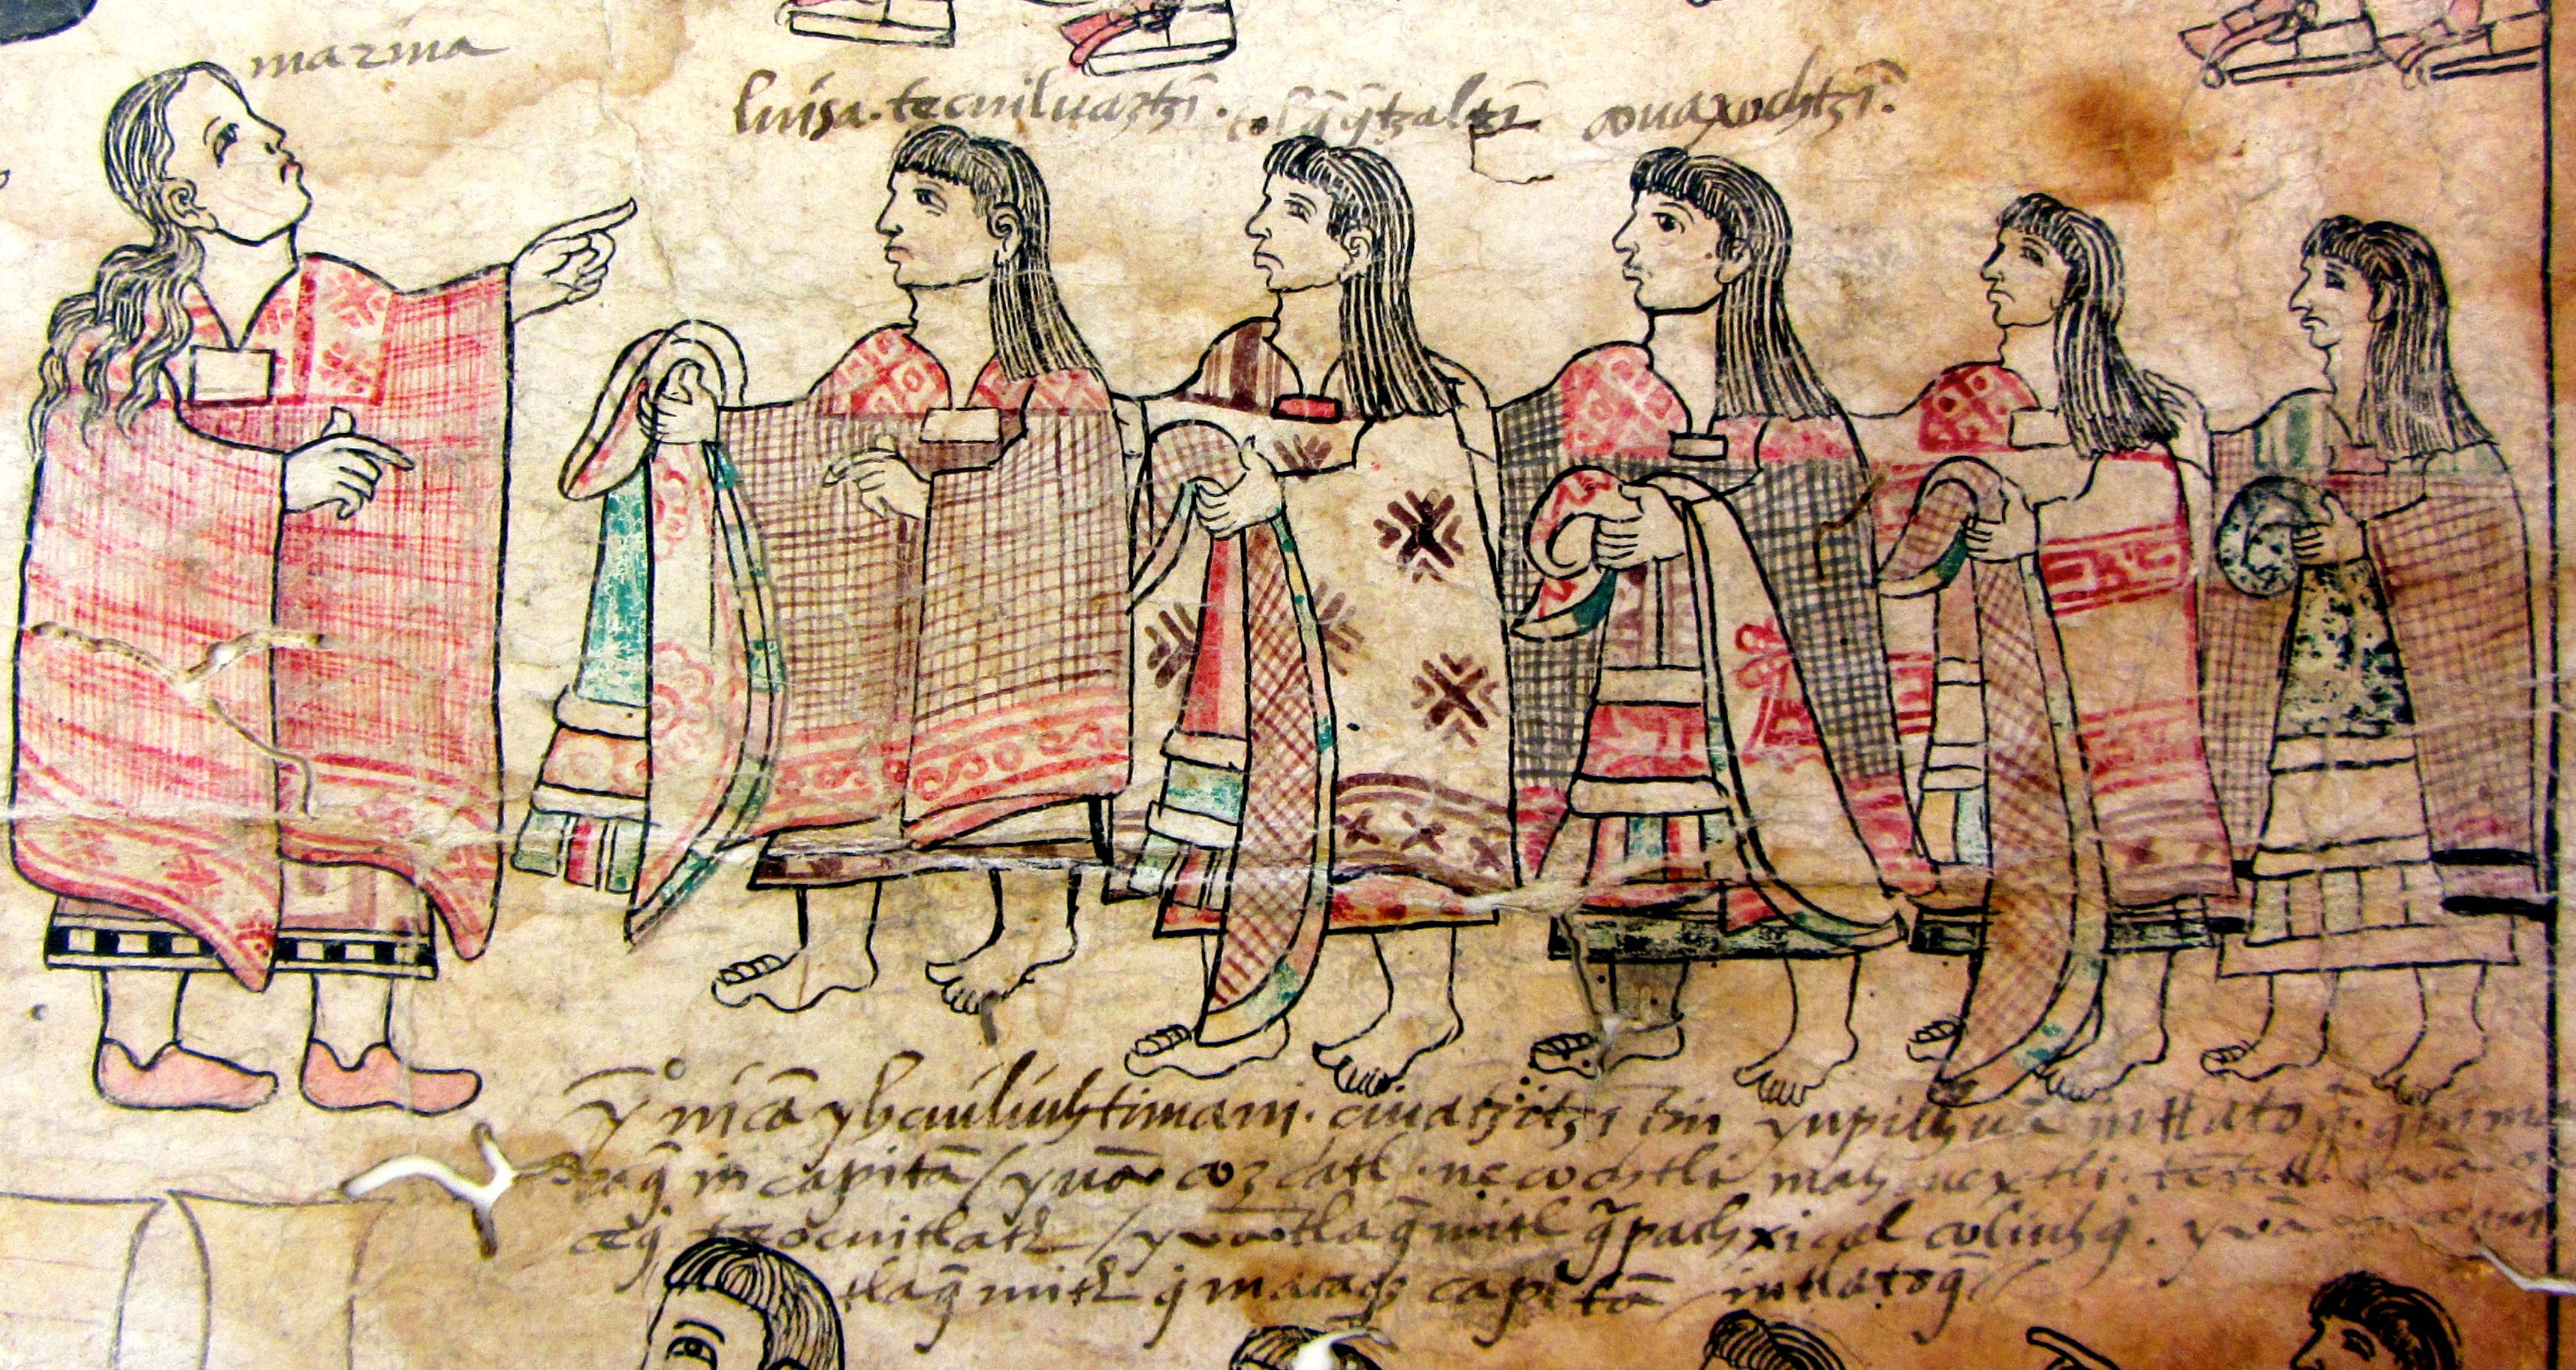 Indigenous women wearing and holding fabrics that they have woven by hand. Lienzo de Tlaxcala, fragment in the Benson Library, UT Austin. (S. Wood photo, 5/30/2014)